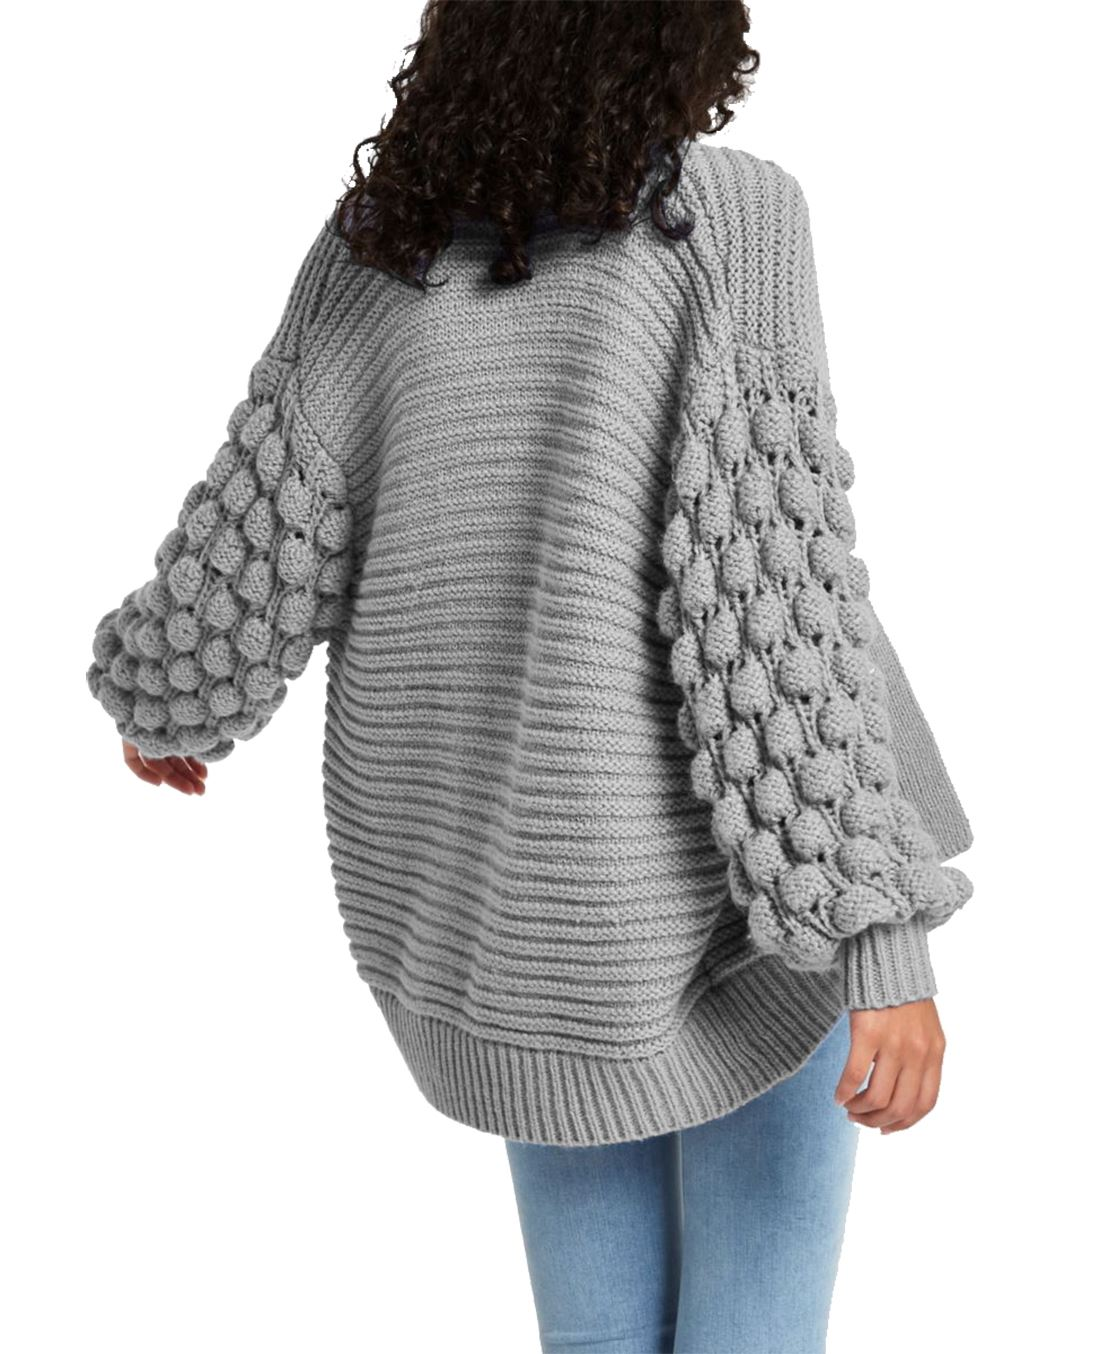 7b45ef9d4e Womens Open Front Bobble Sleeve Knitted Cardigan Ladies Oversized ...